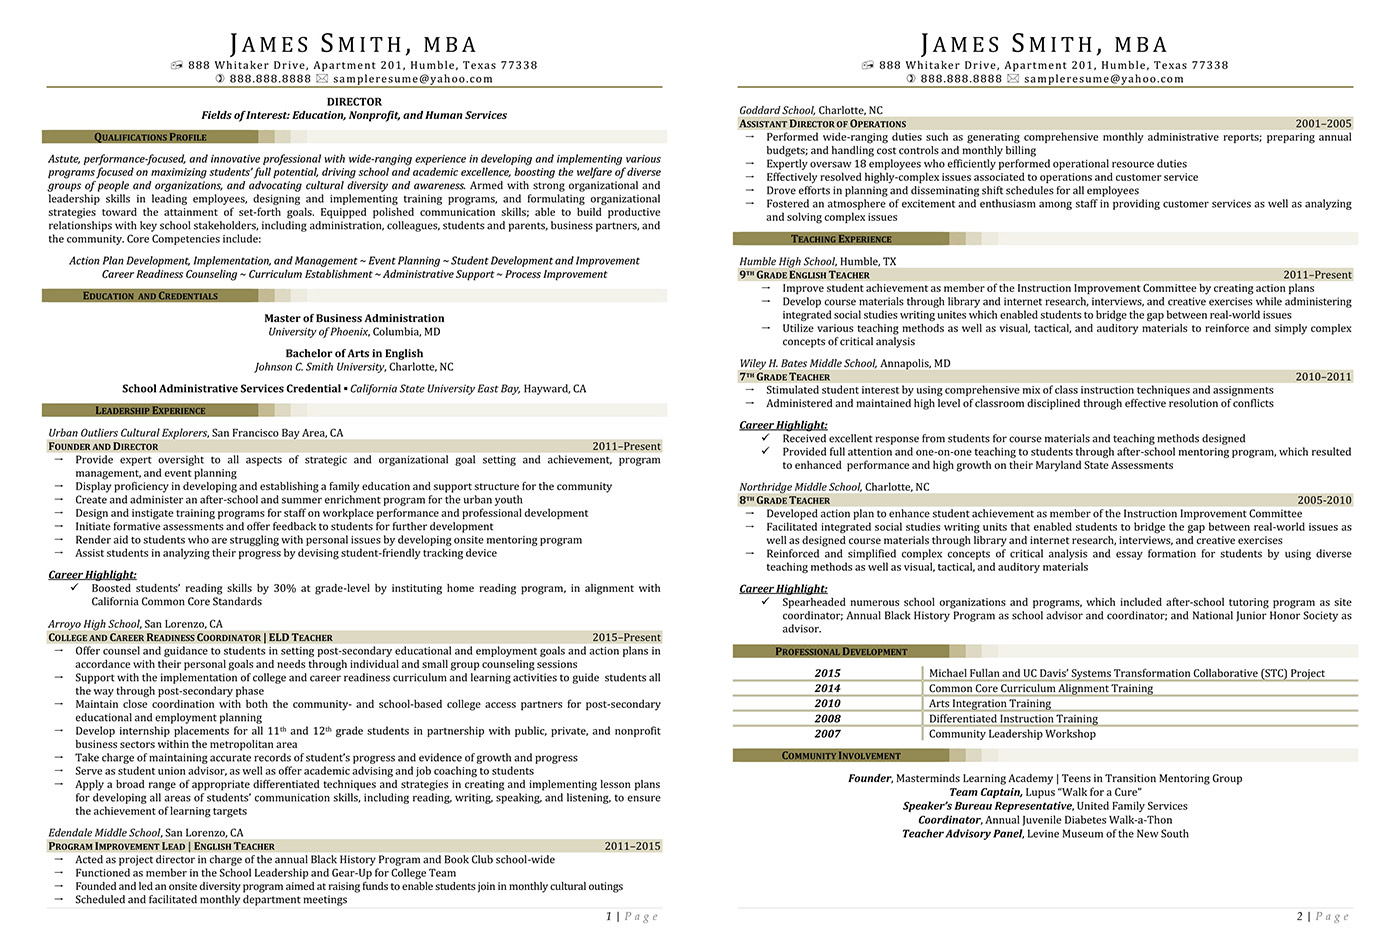 Biotechnology Research Assistant Resume · Director Resume  Resume Research Assistant